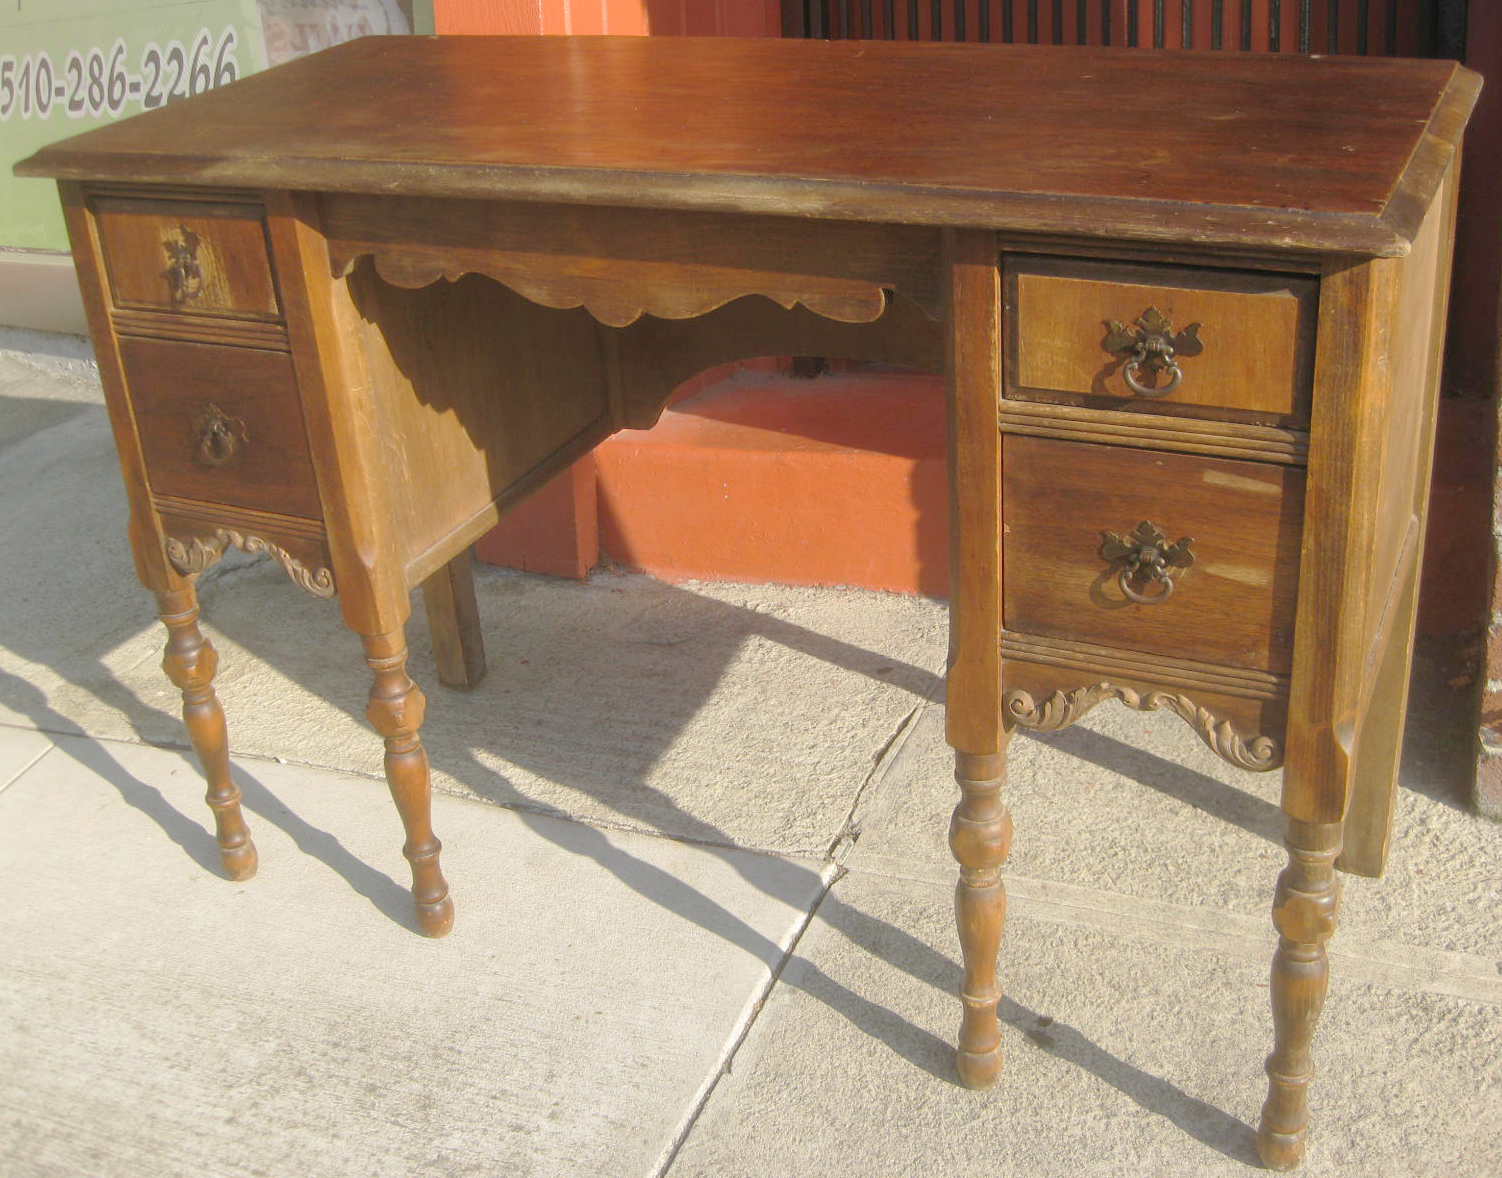 UHURU FURNITURE & COLLECTIBLES: SOLD - Small Wooden Desk - $65